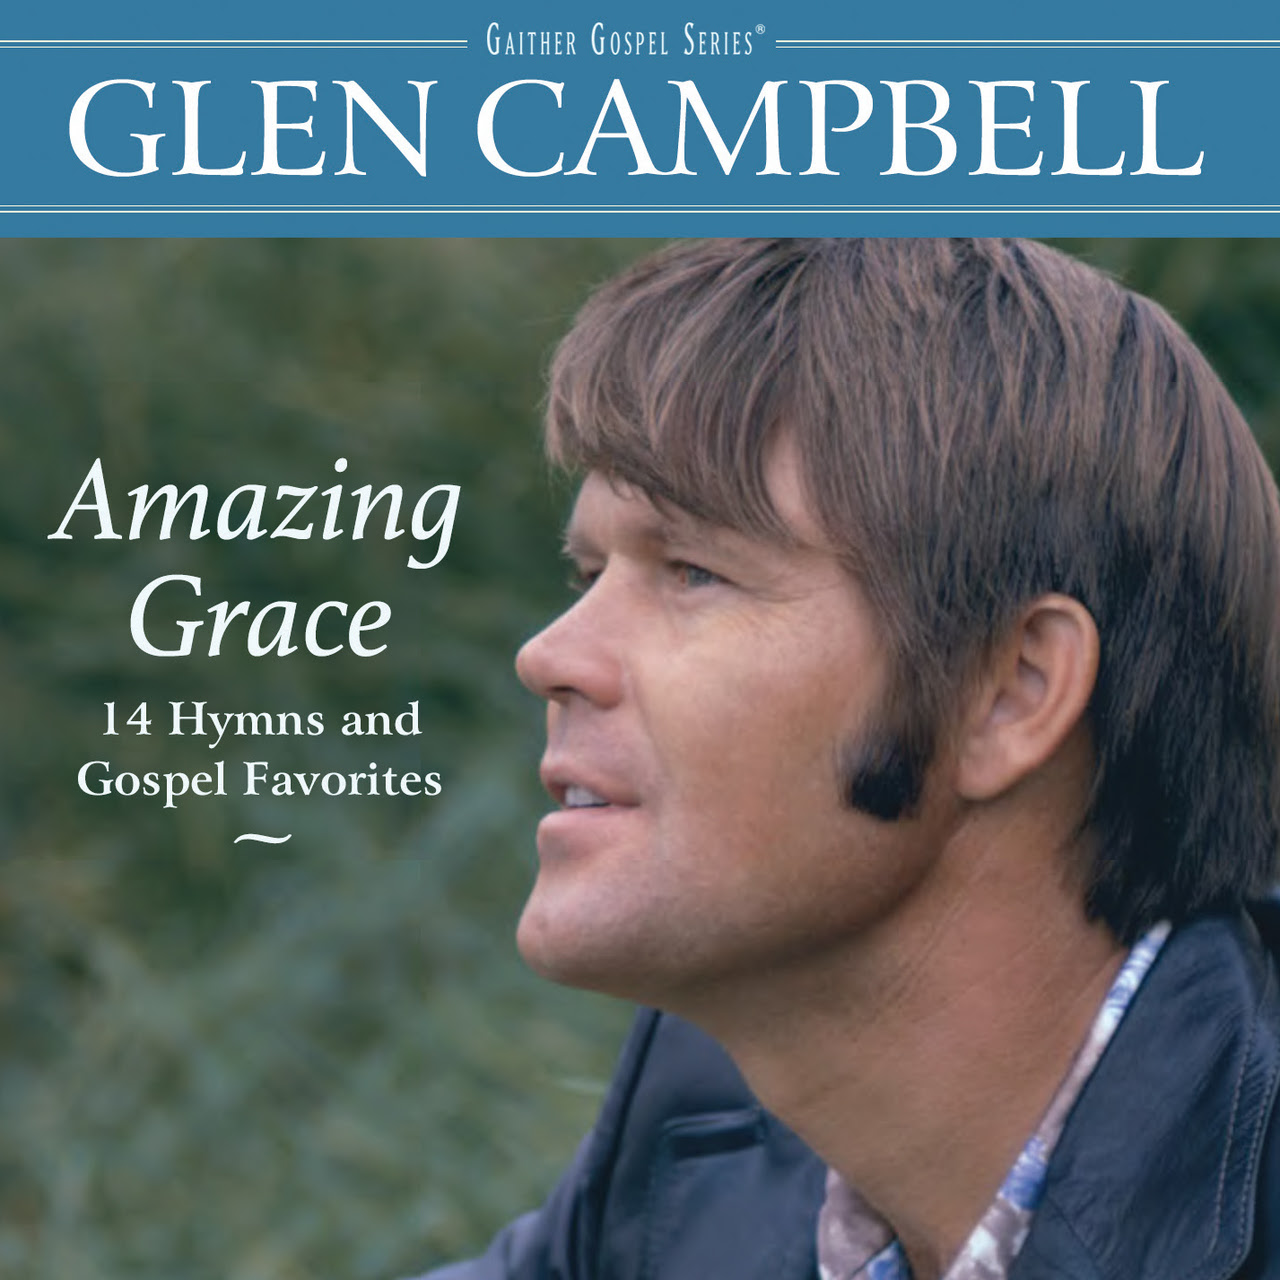 Gaither Music Group Pays Tribute to the Legacy of Music Icon Glen Campbell with Release of Gospel Collection